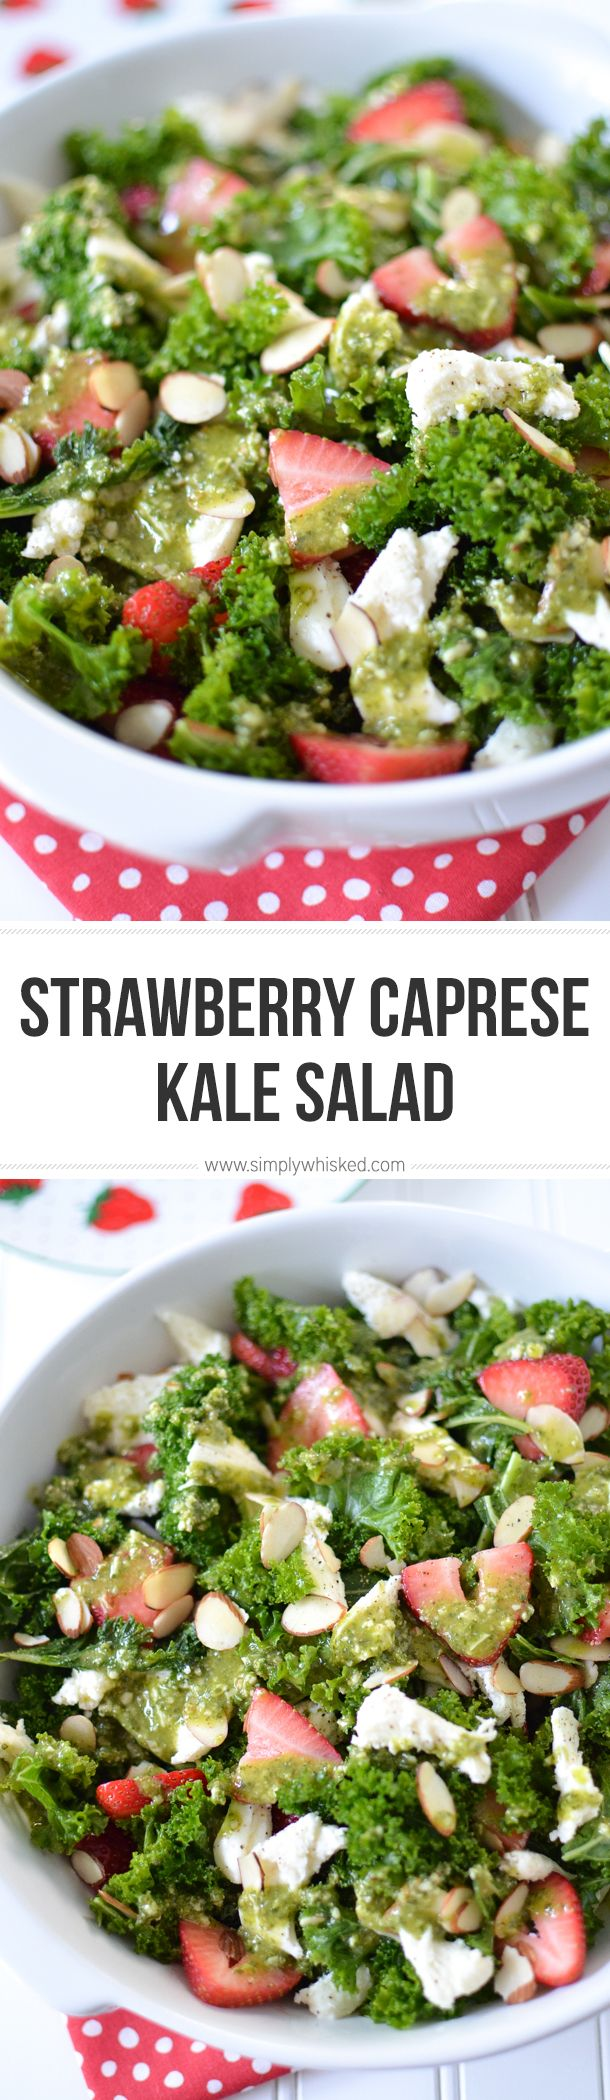 Strawberry Caprese Kale Salad | Summer salad recipes, mozzarella salad, basil vinaigrette | @simplywhisked